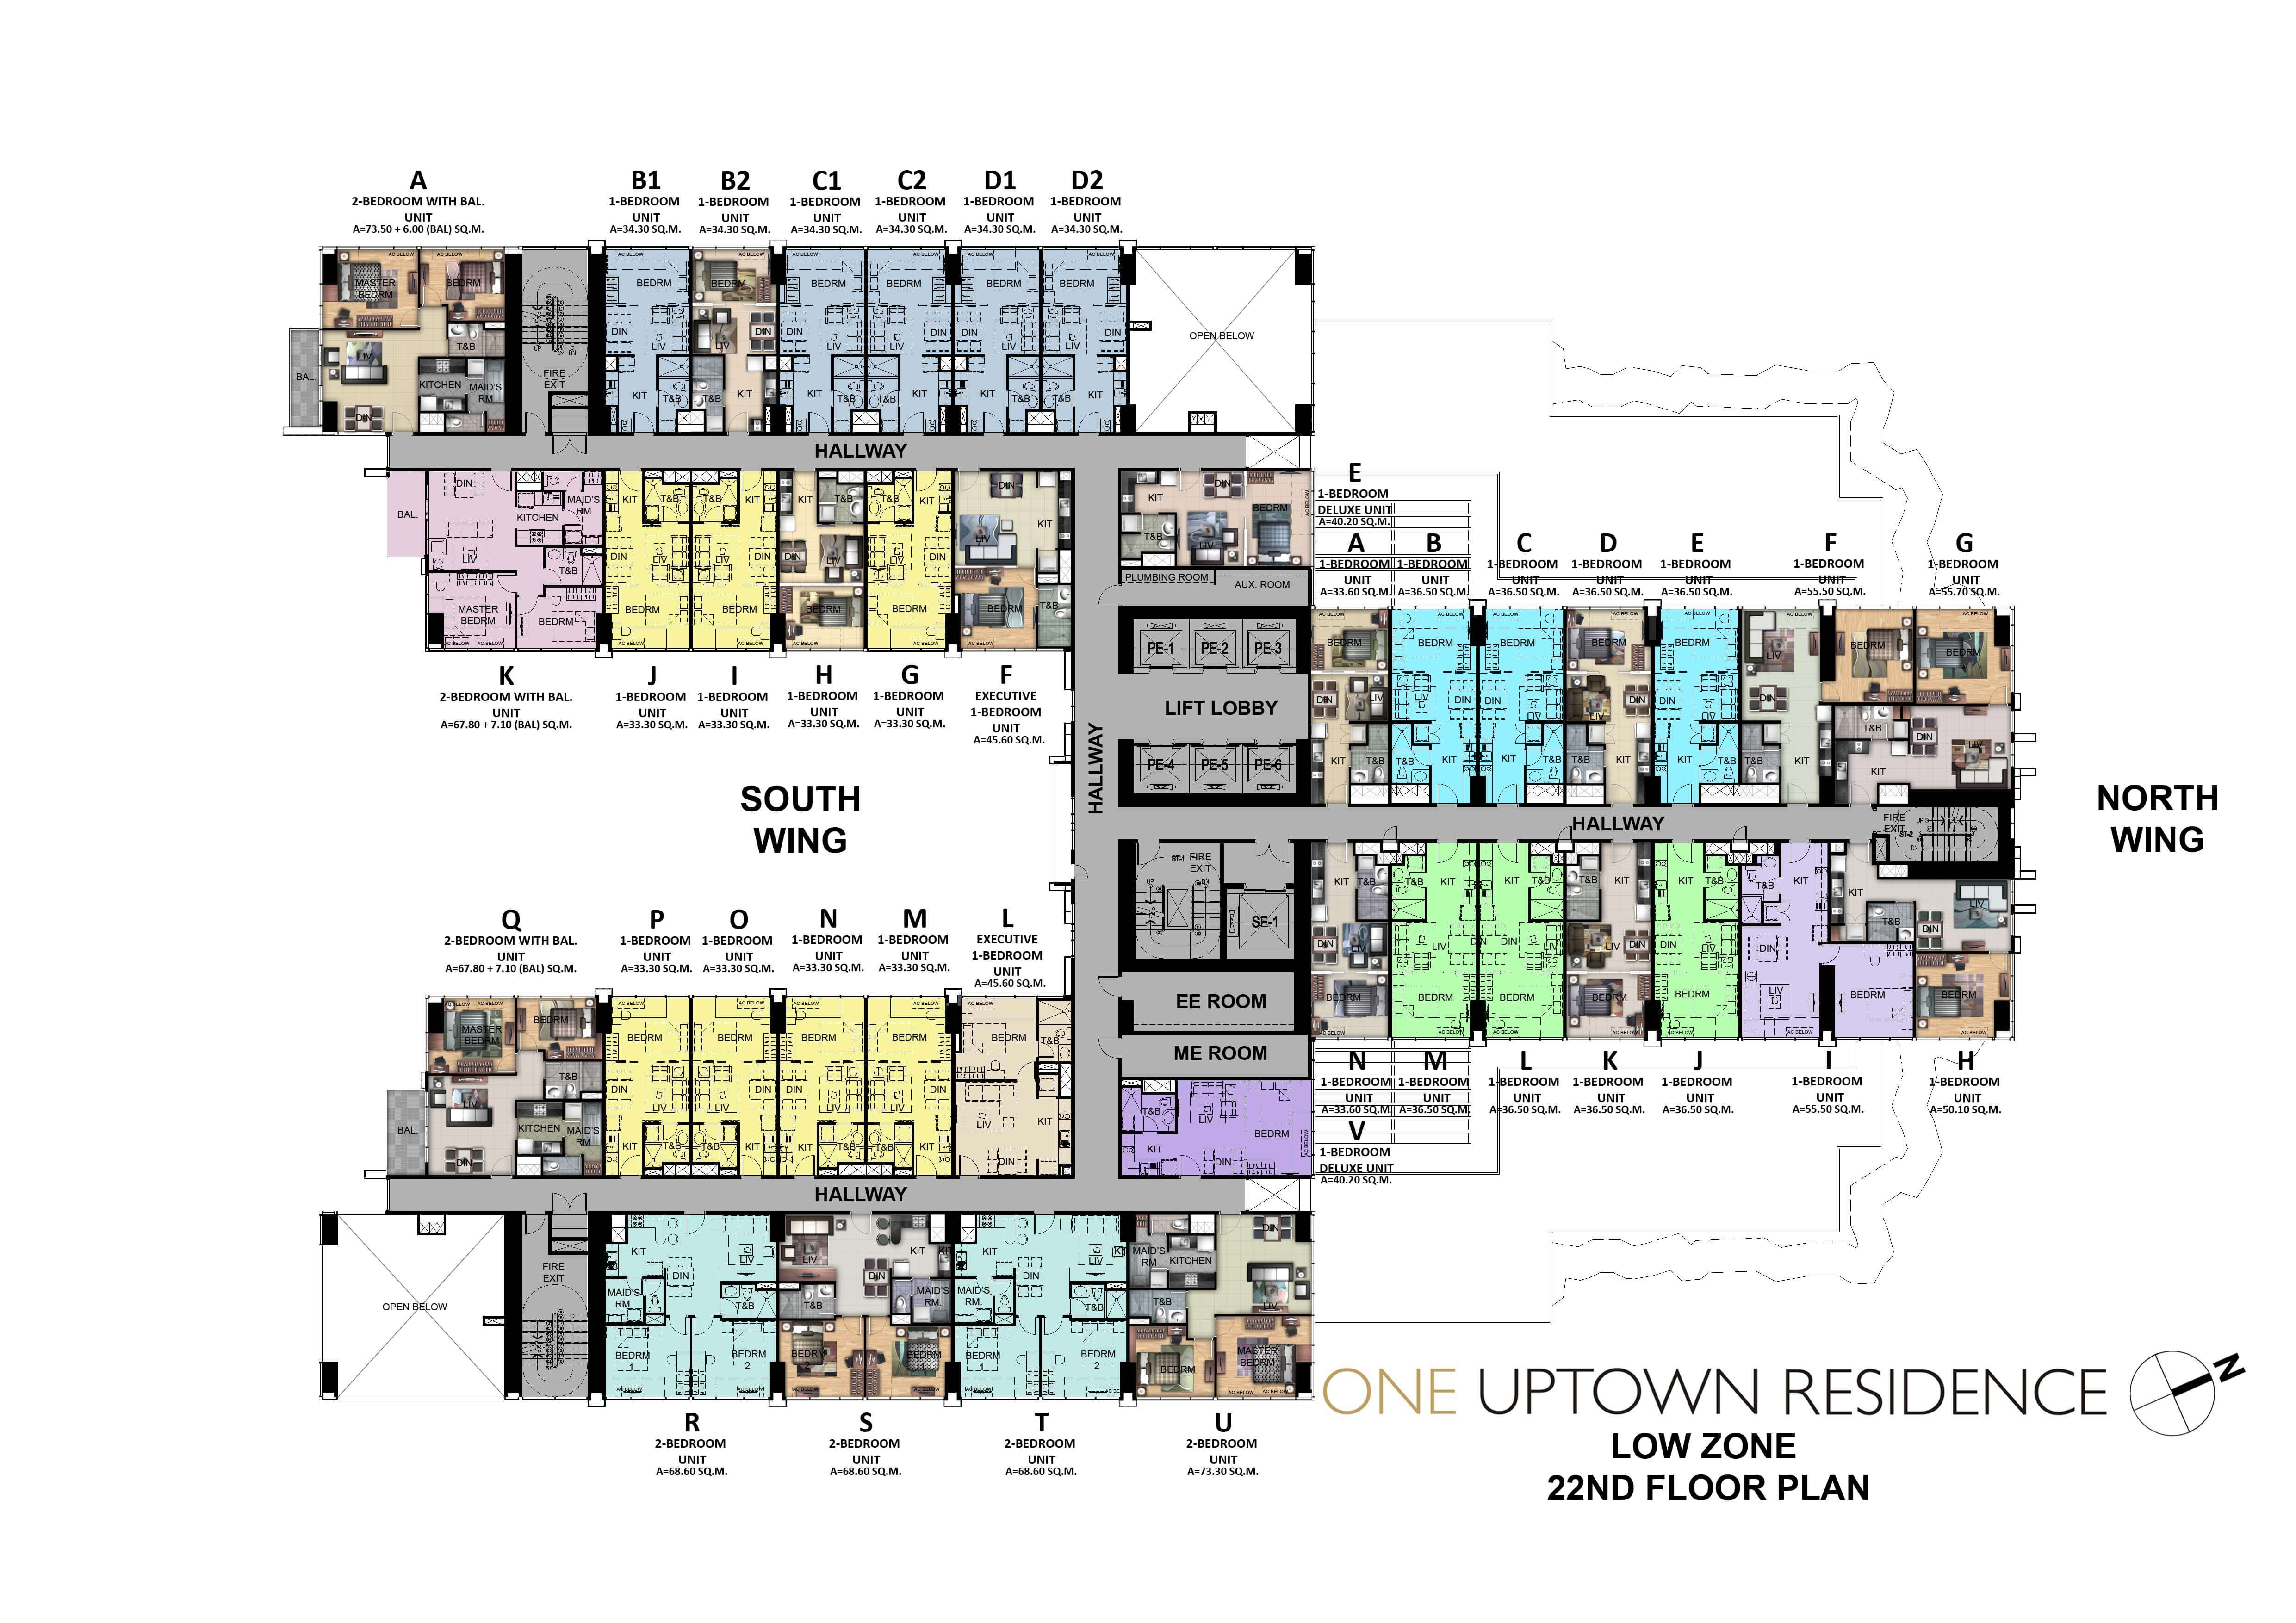 One Uptown Residence-Floor-Plans-Condos-for-sale-22ND